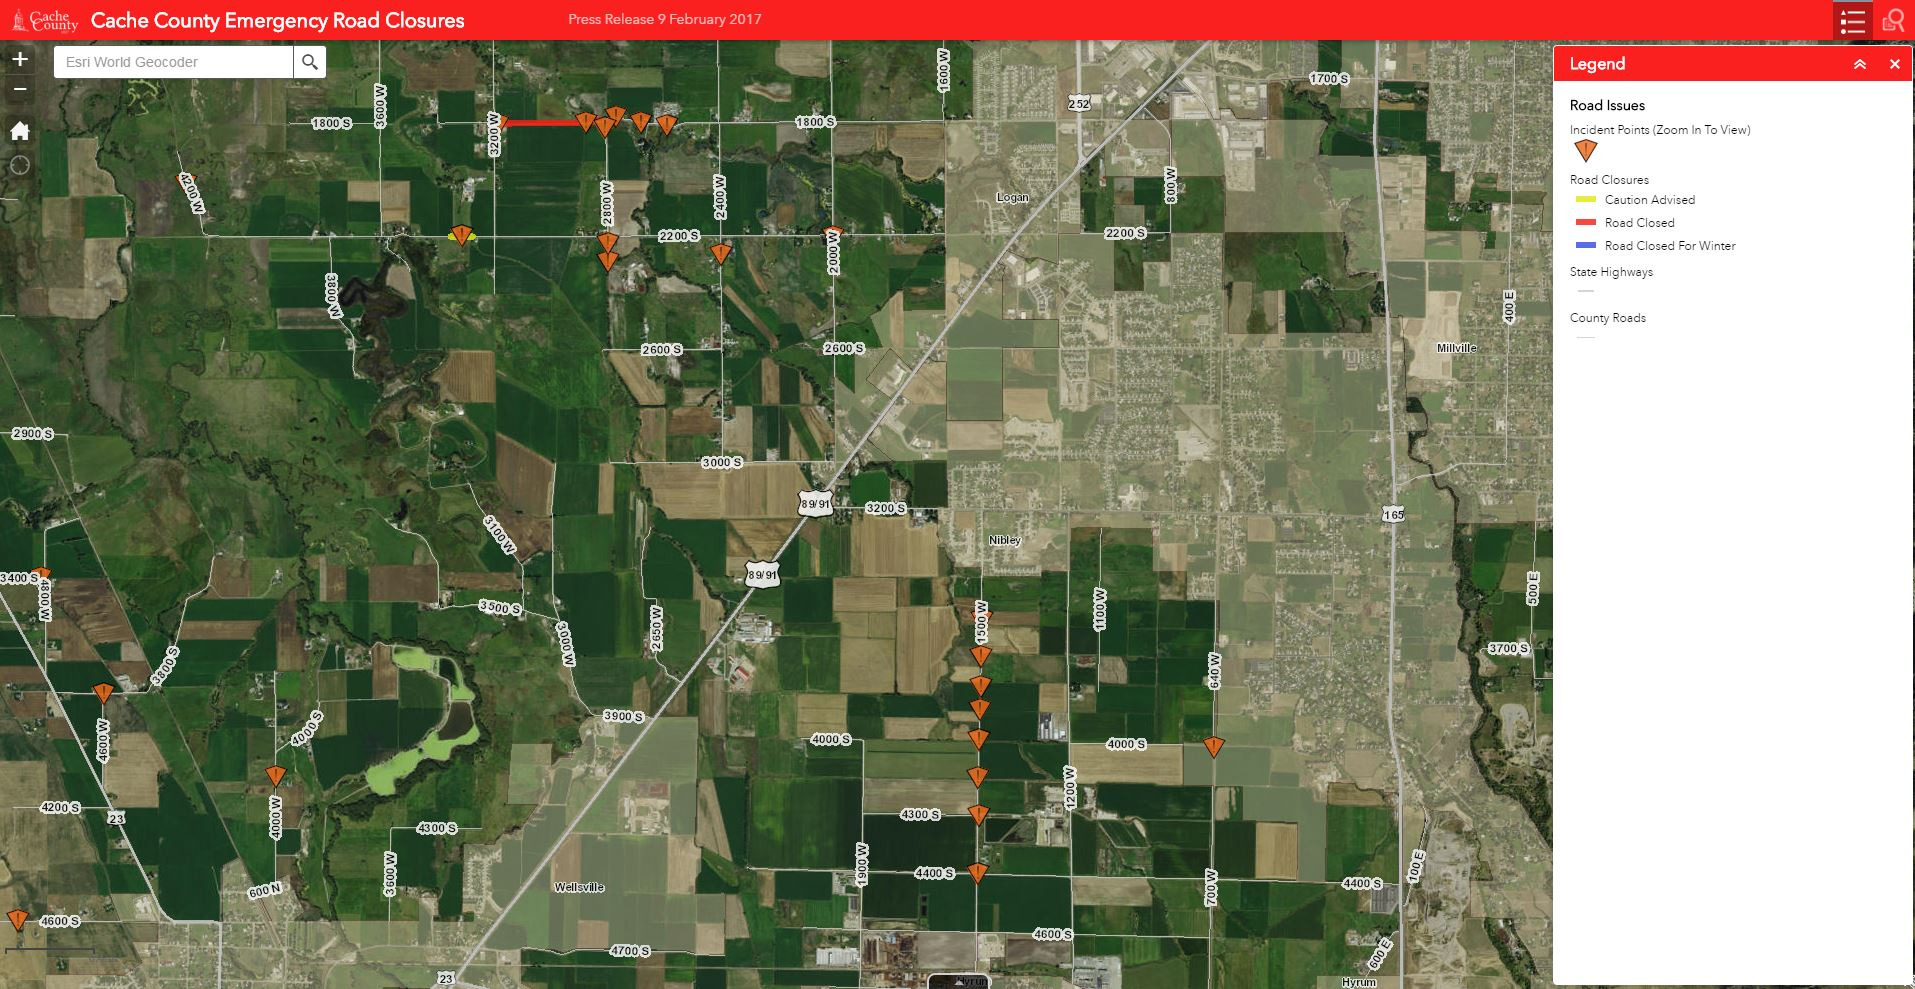 Image of the Road Closures Viewer